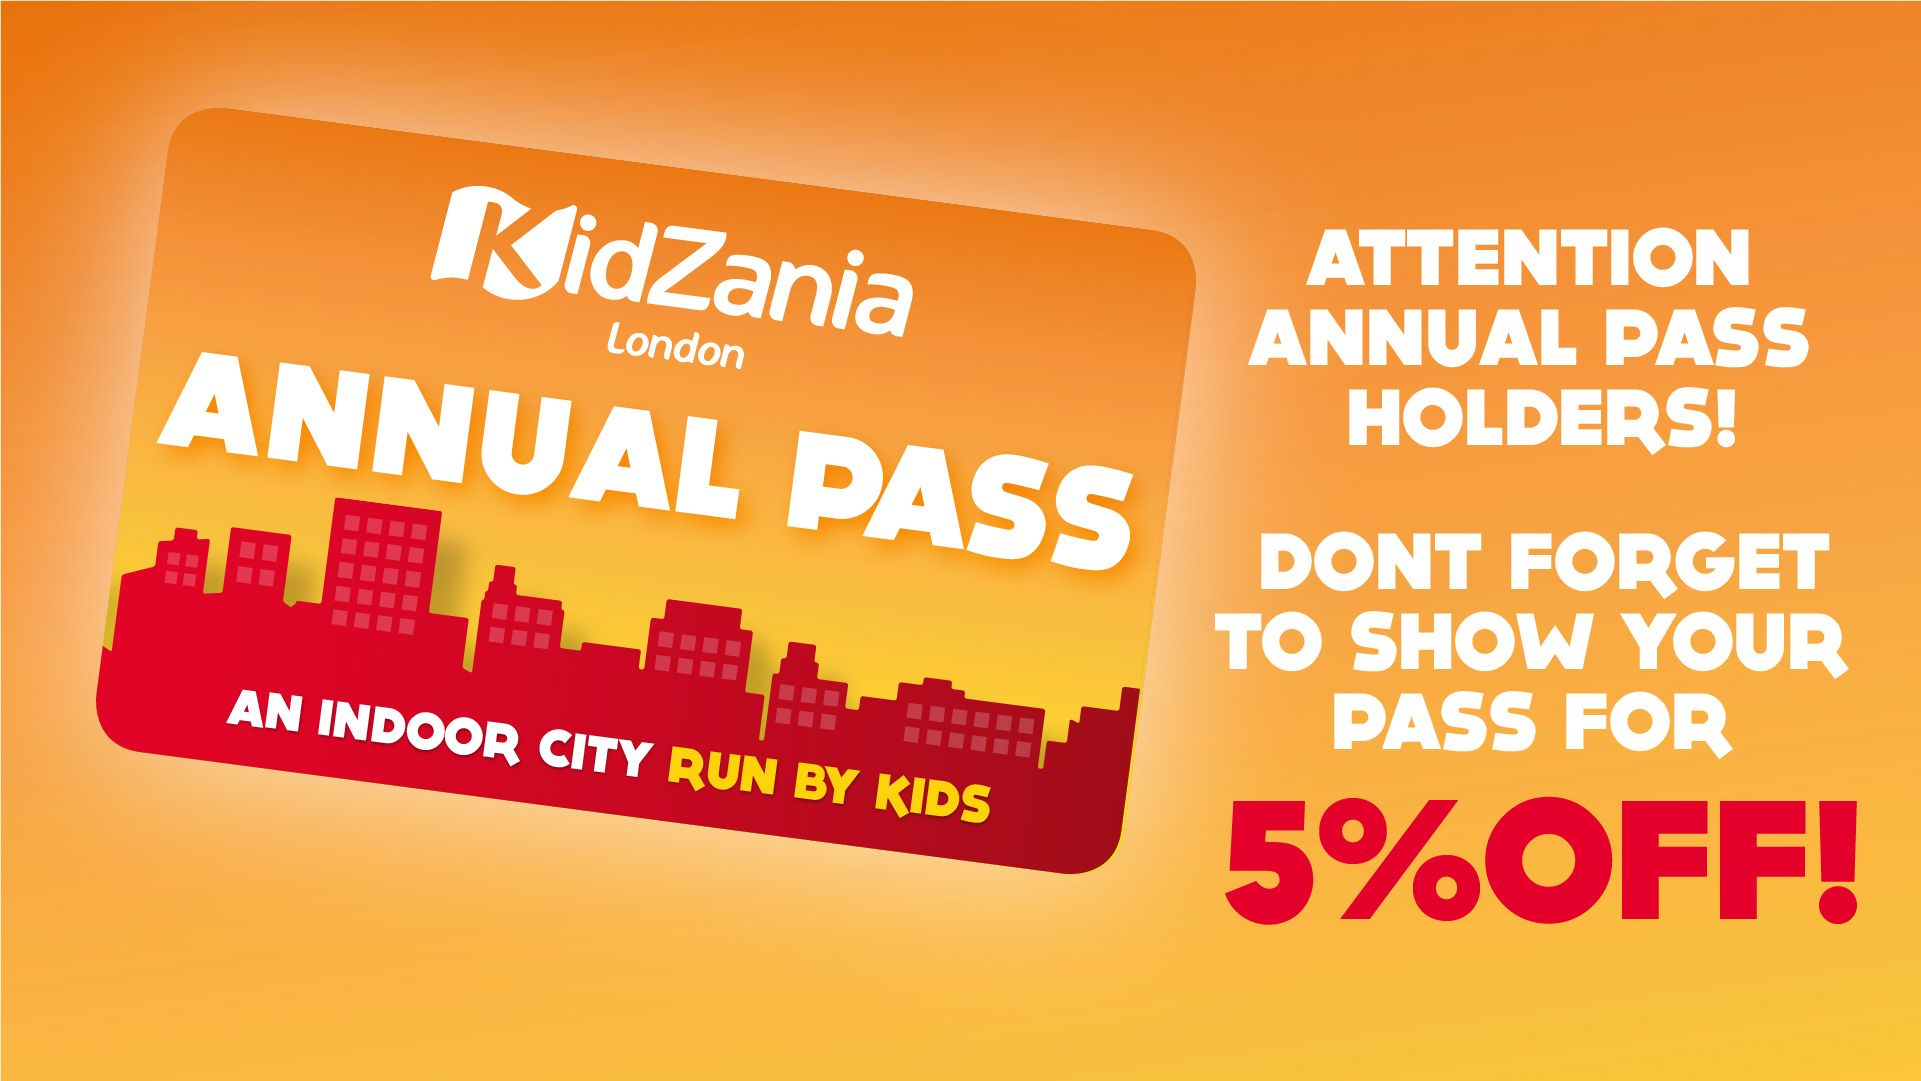 Don't forget to show your Annual Pass for 5% OFF!